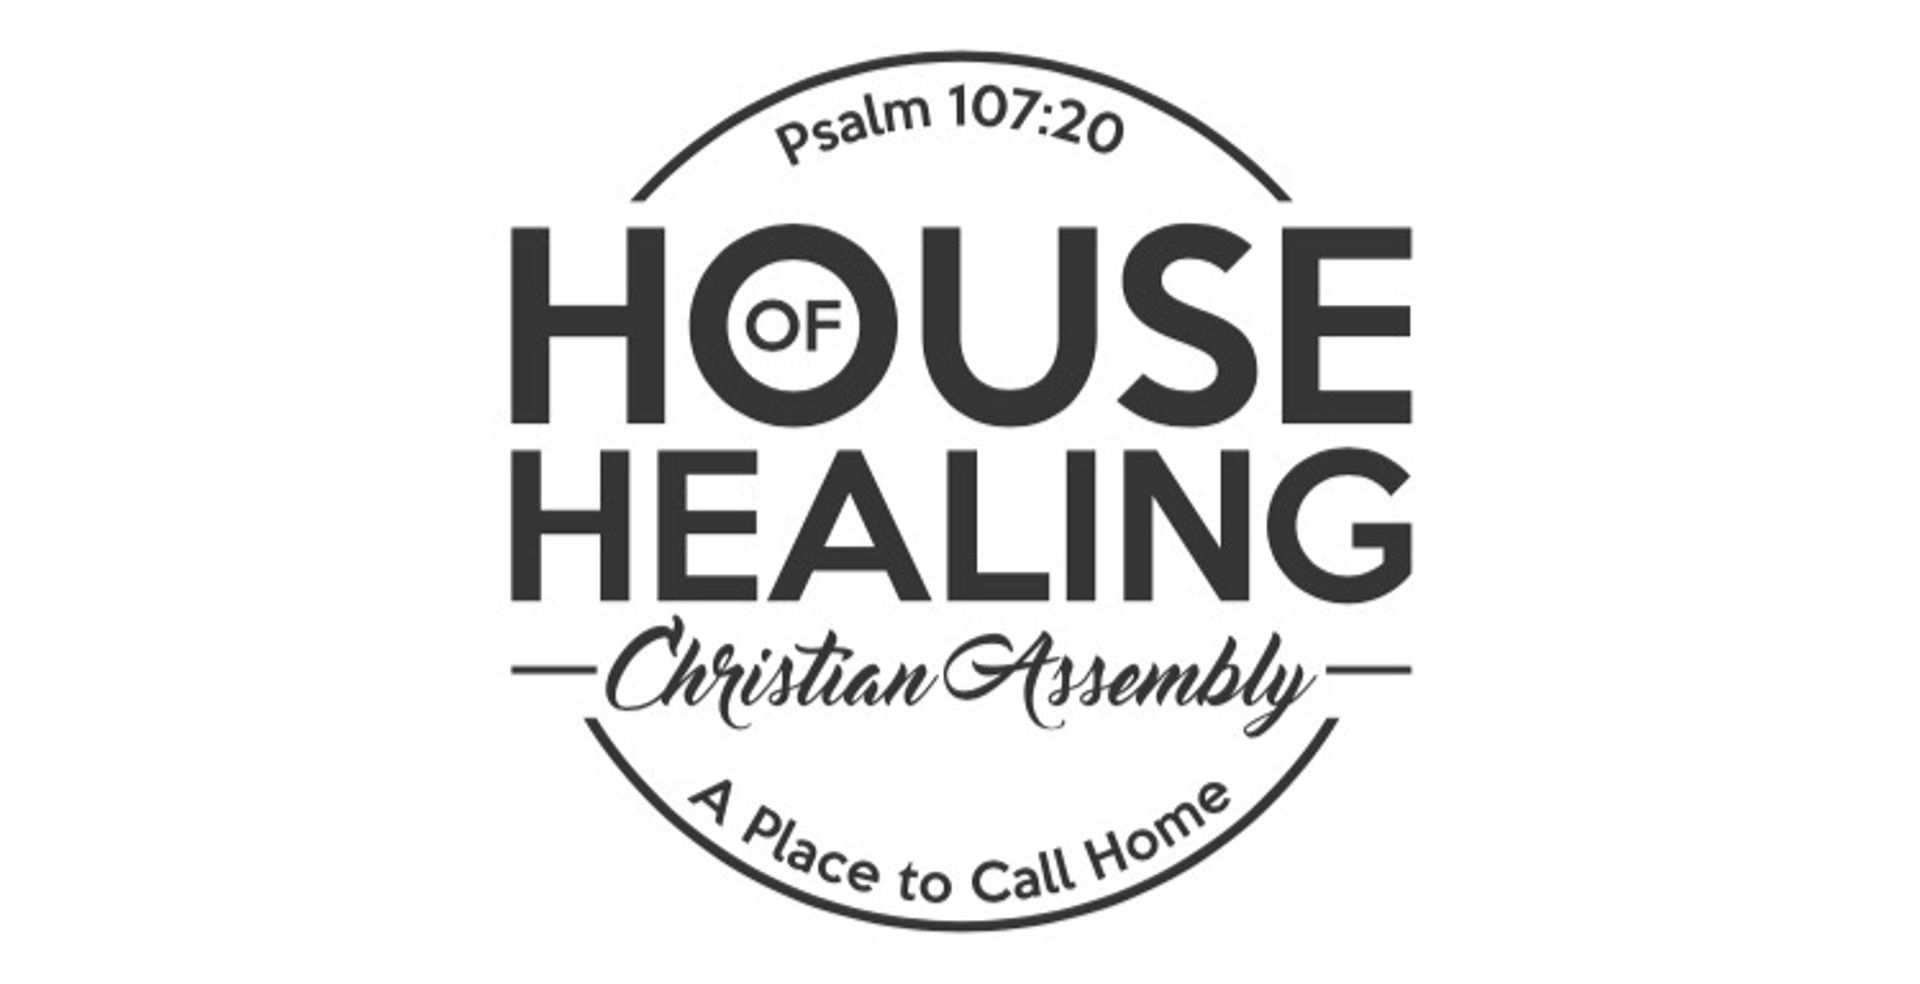 House of Healing Christian Assembly